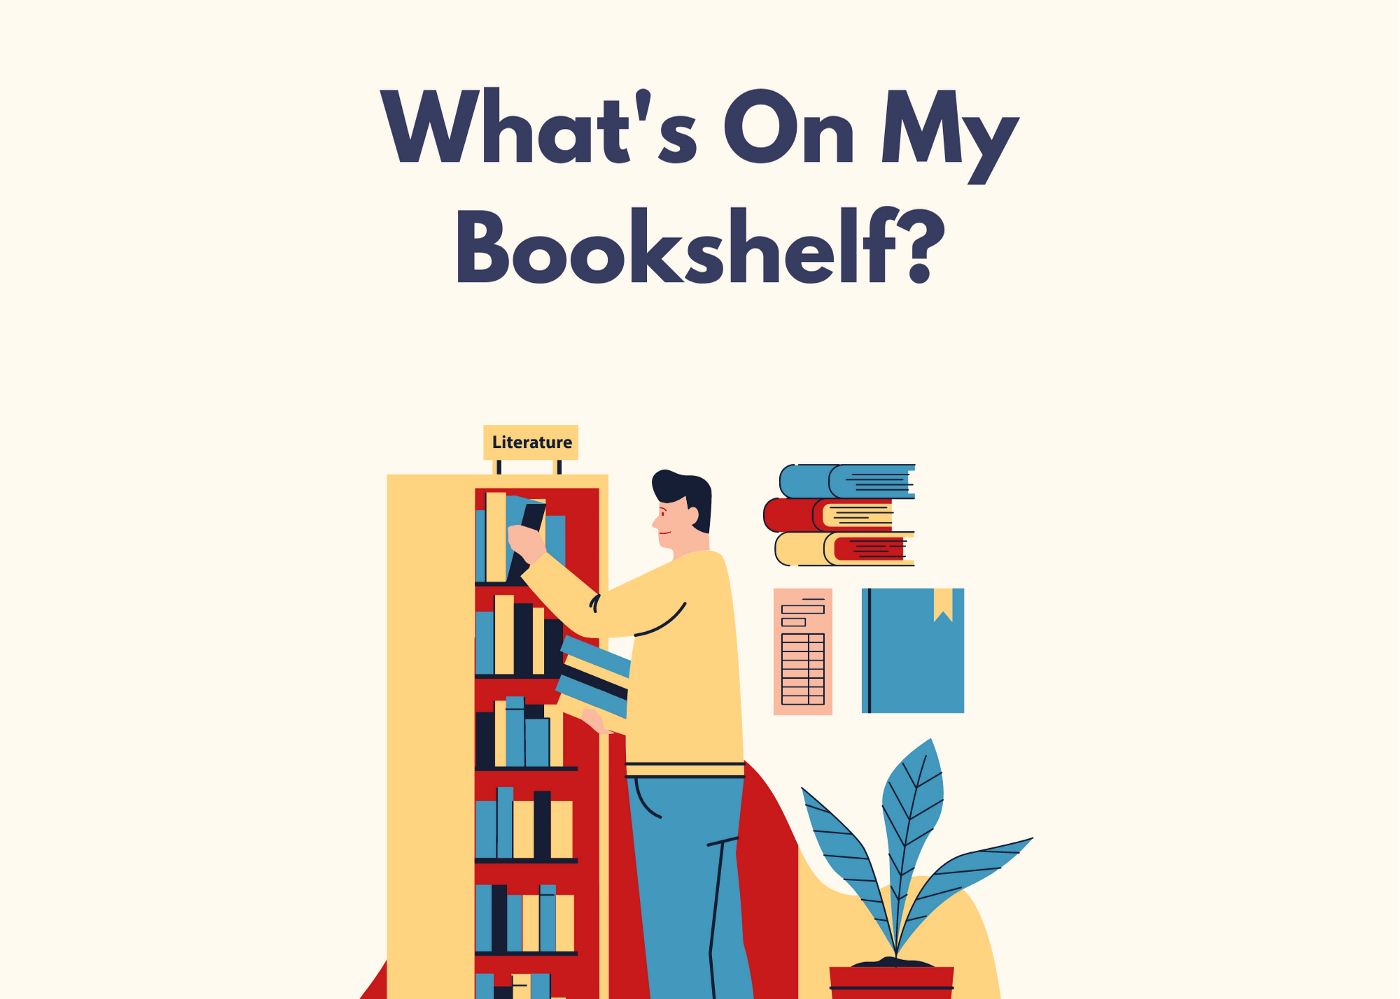 What books do I recommend reading?